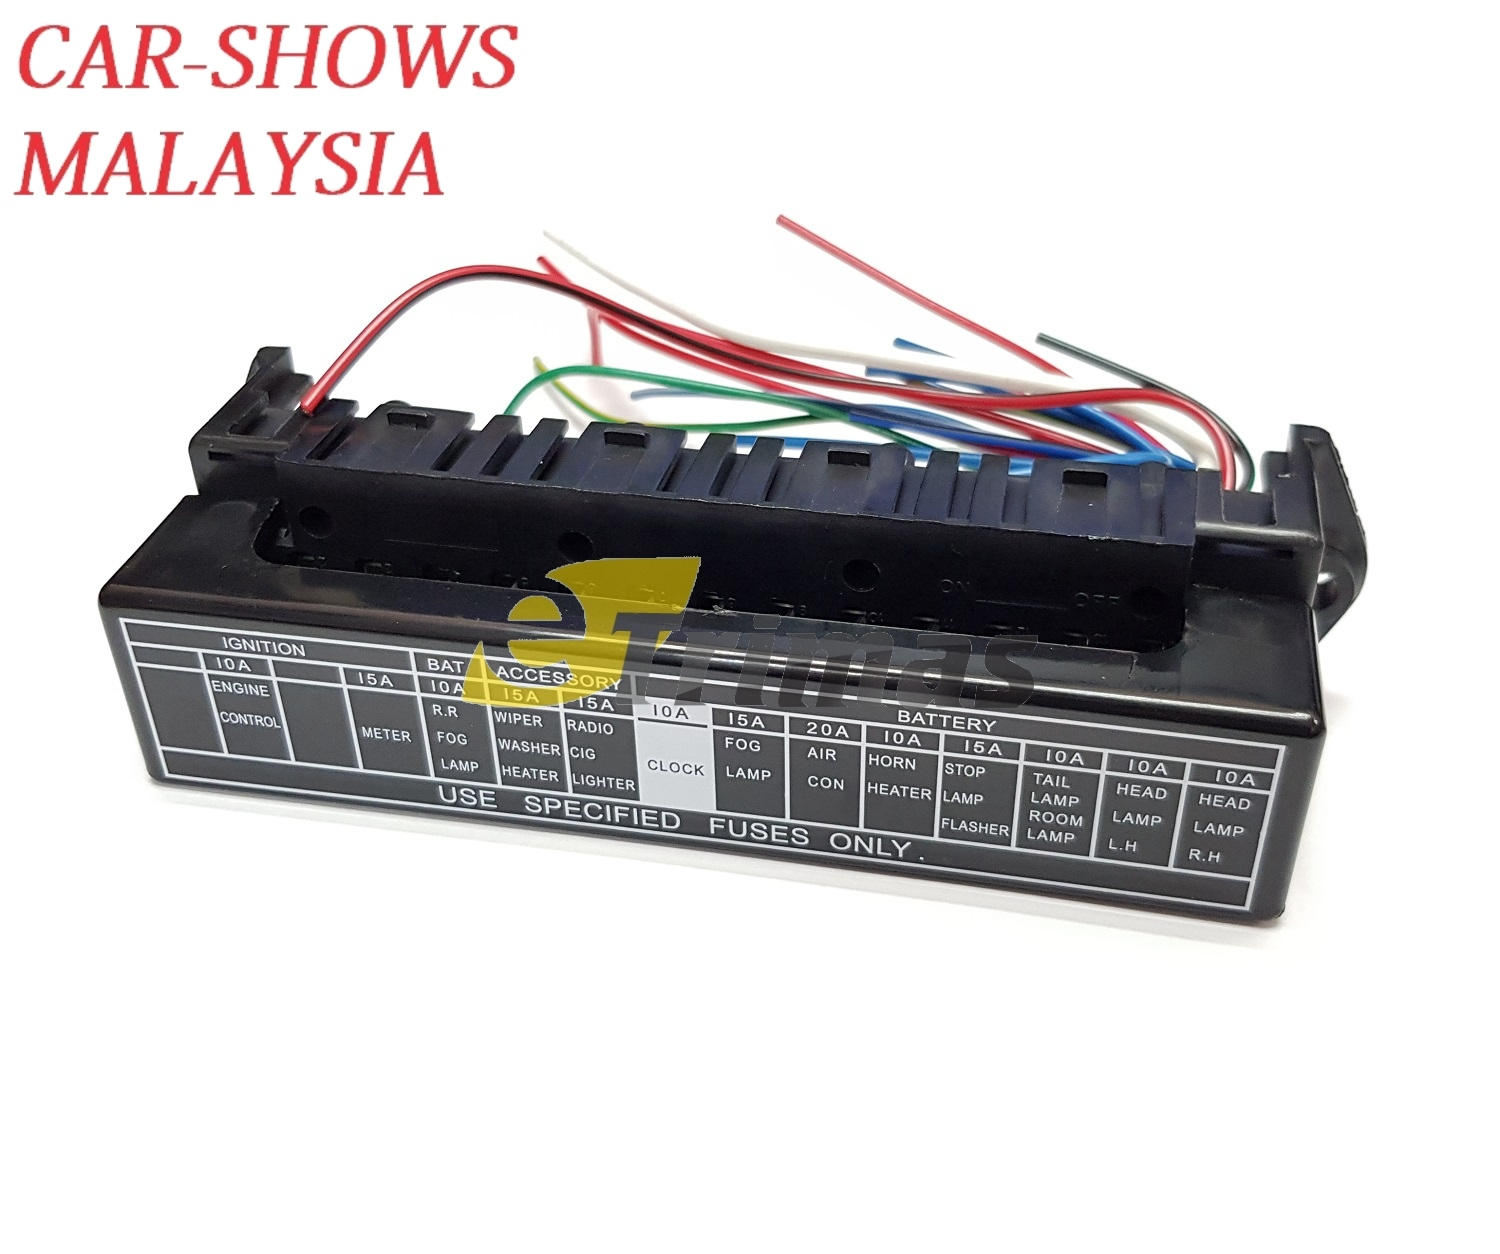 15 Poles Automotive Plug In Fuse Blo End 6 14 2020 810 Pm Car Box Voltage Block Modify Myvi Viva Axia Alza